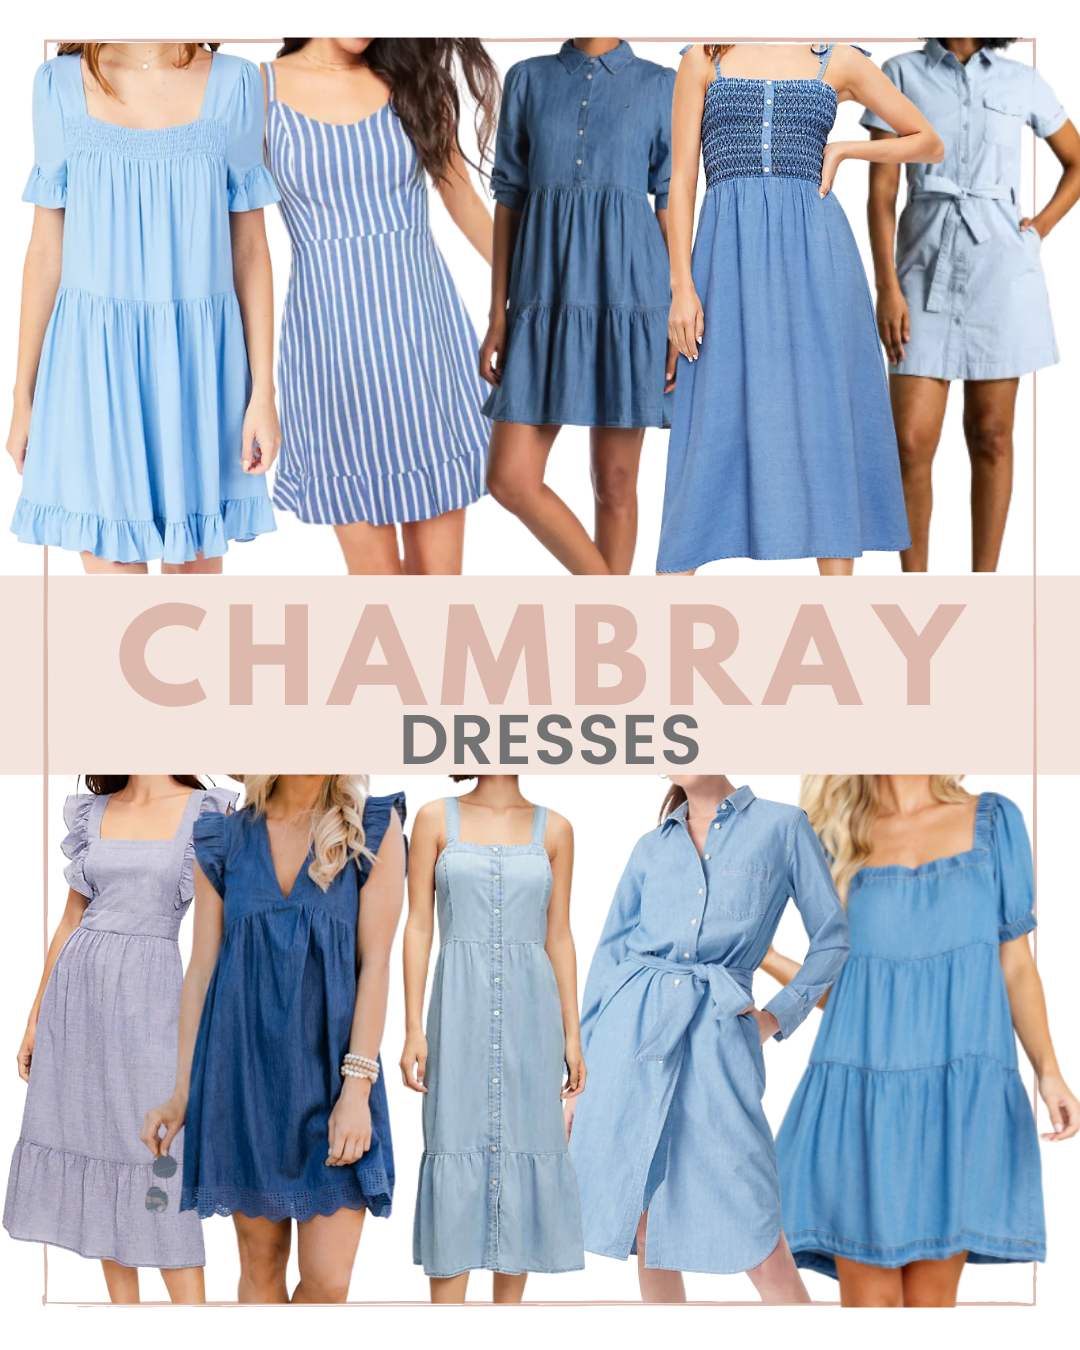 How to Style a Chambray Dress